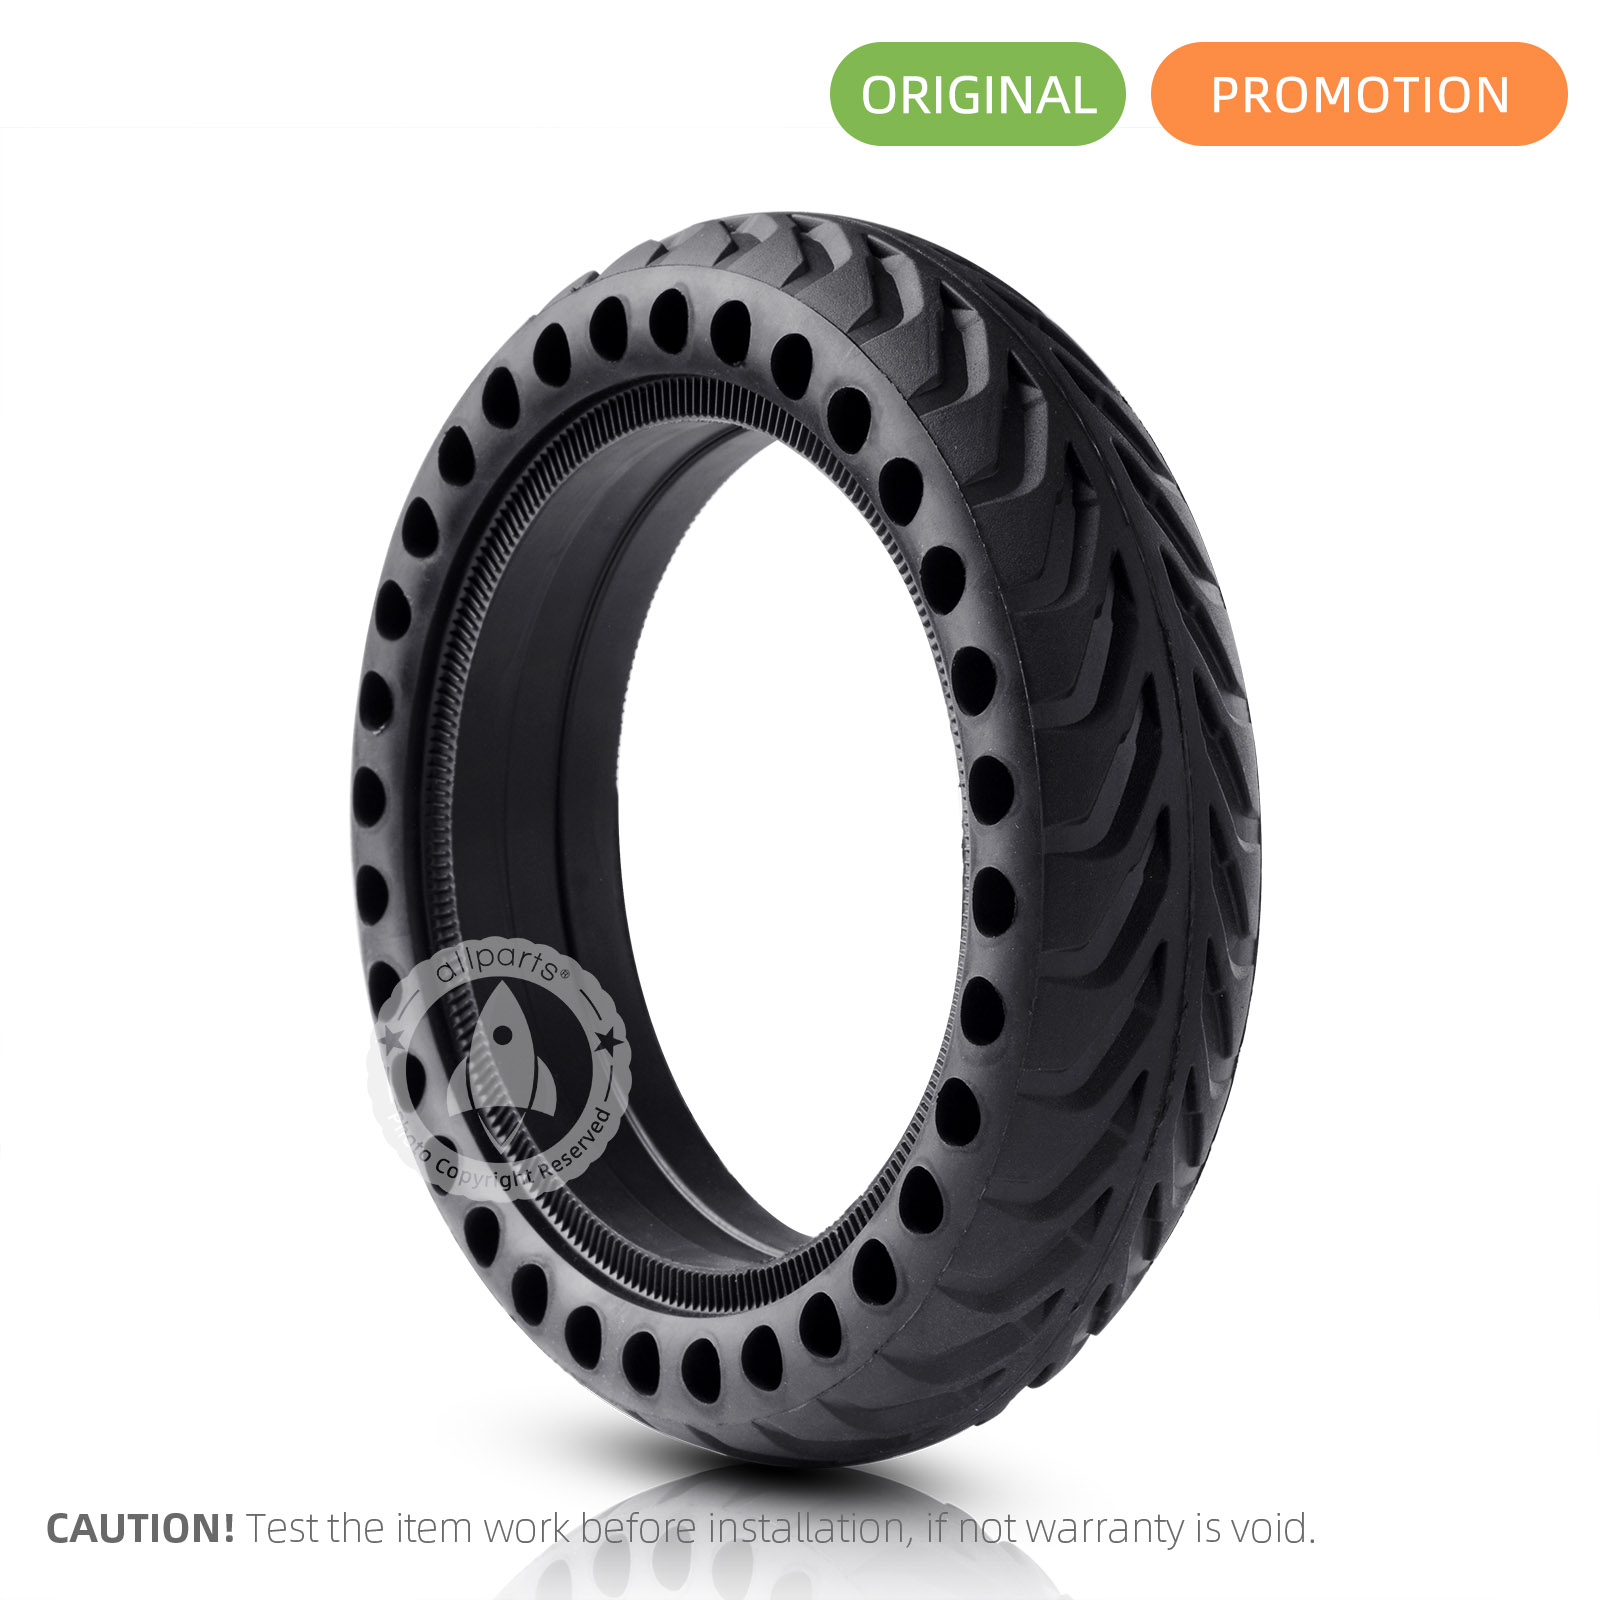 Xiaomi M365 Scooter Solid Tyre Non-Pneumatic Shock Absorber Damping Rubber Wheel